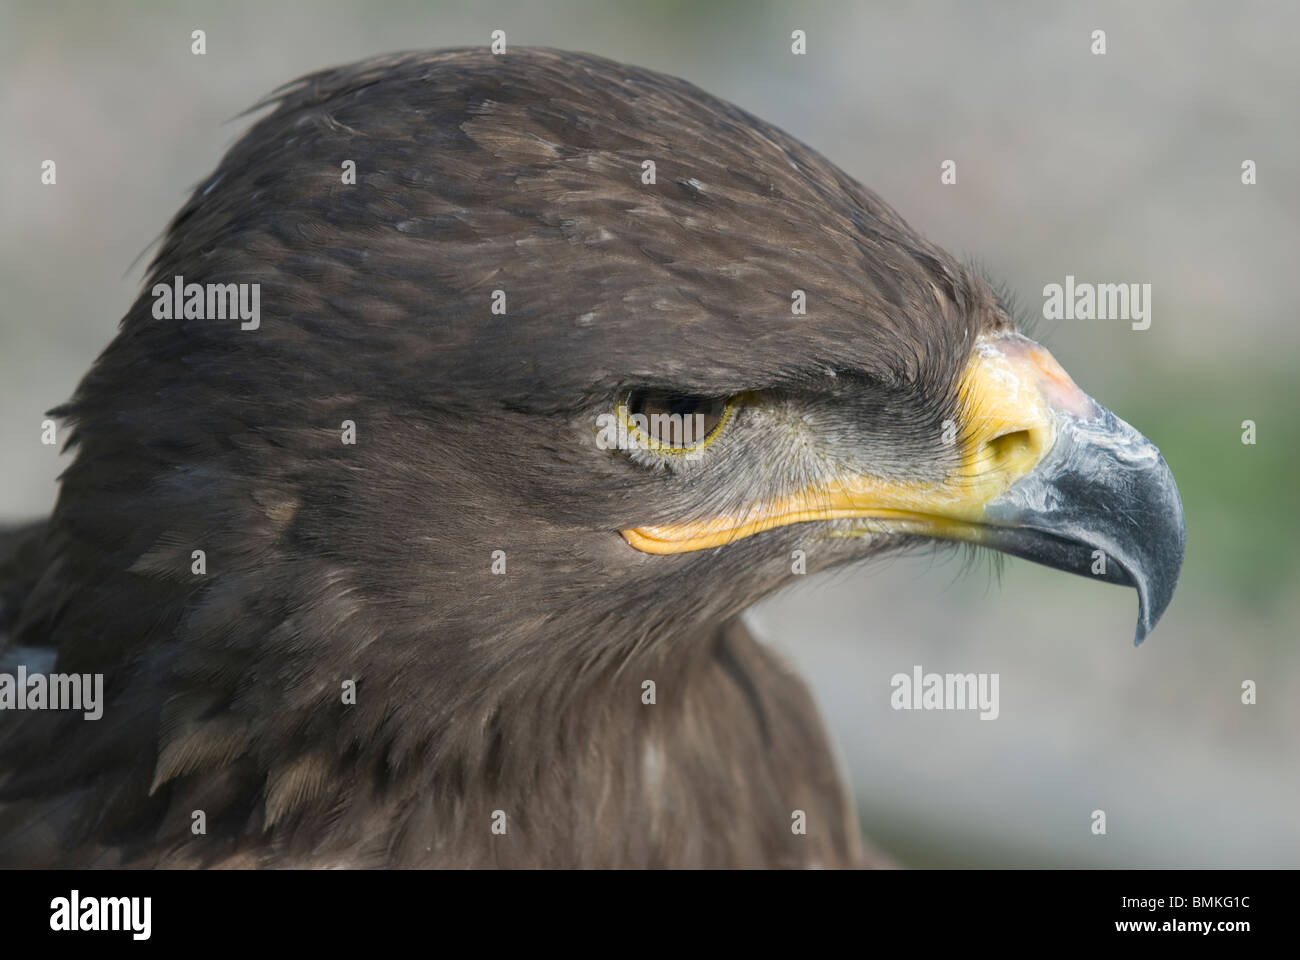 Steppe eagle (Aquila nipalensis) at the Suncar Falcon farm, Alma Ata, Kazakhstan - Stock Image